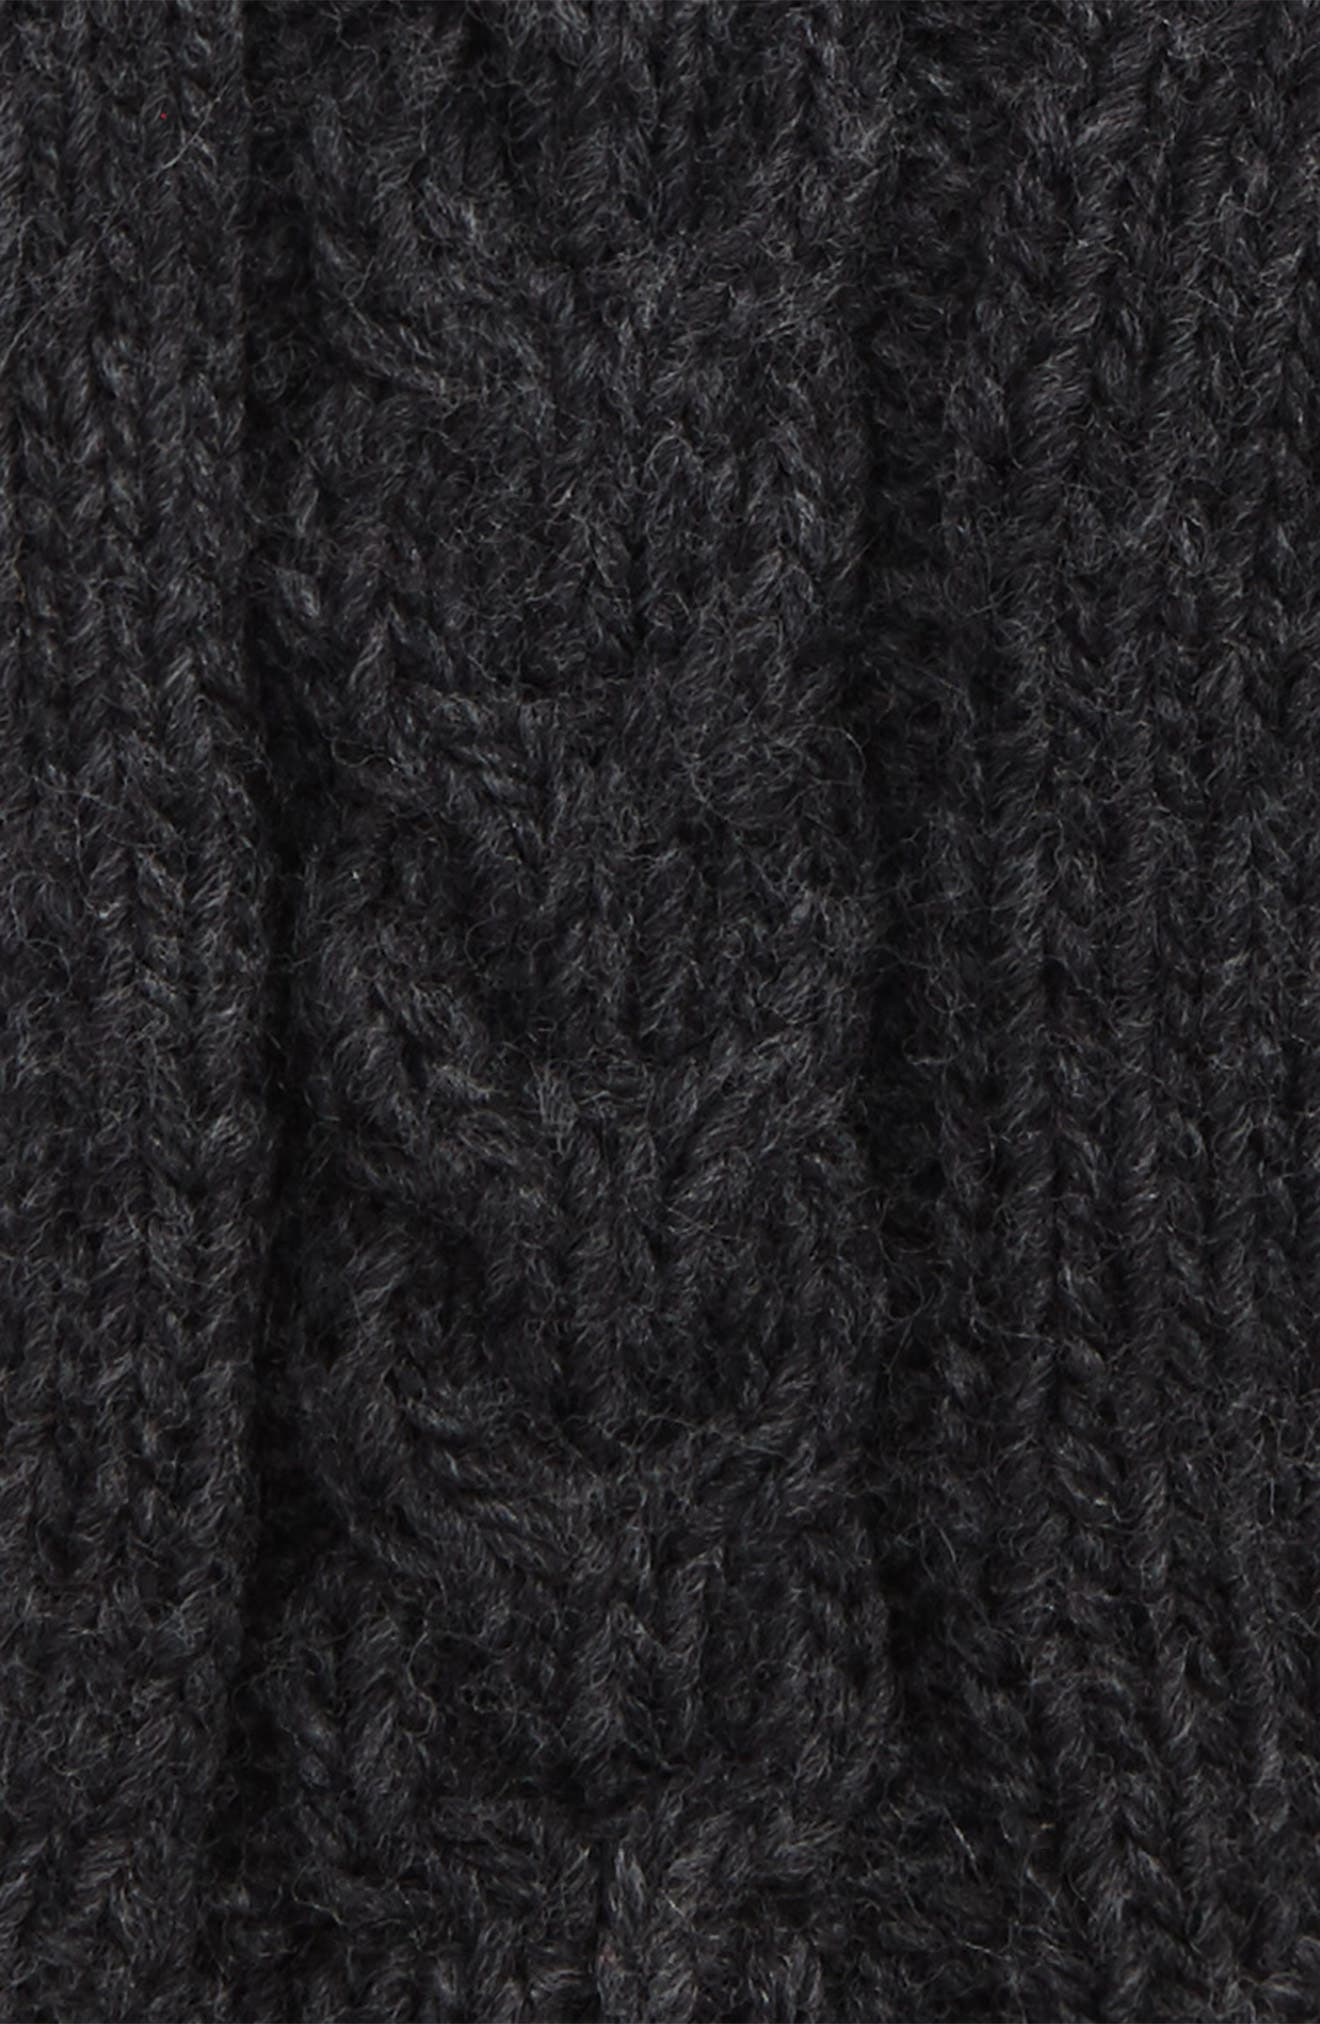 NirvannaDesigns Cable Knit Hand Warmers,                             Alternate thumbnail 9, color,